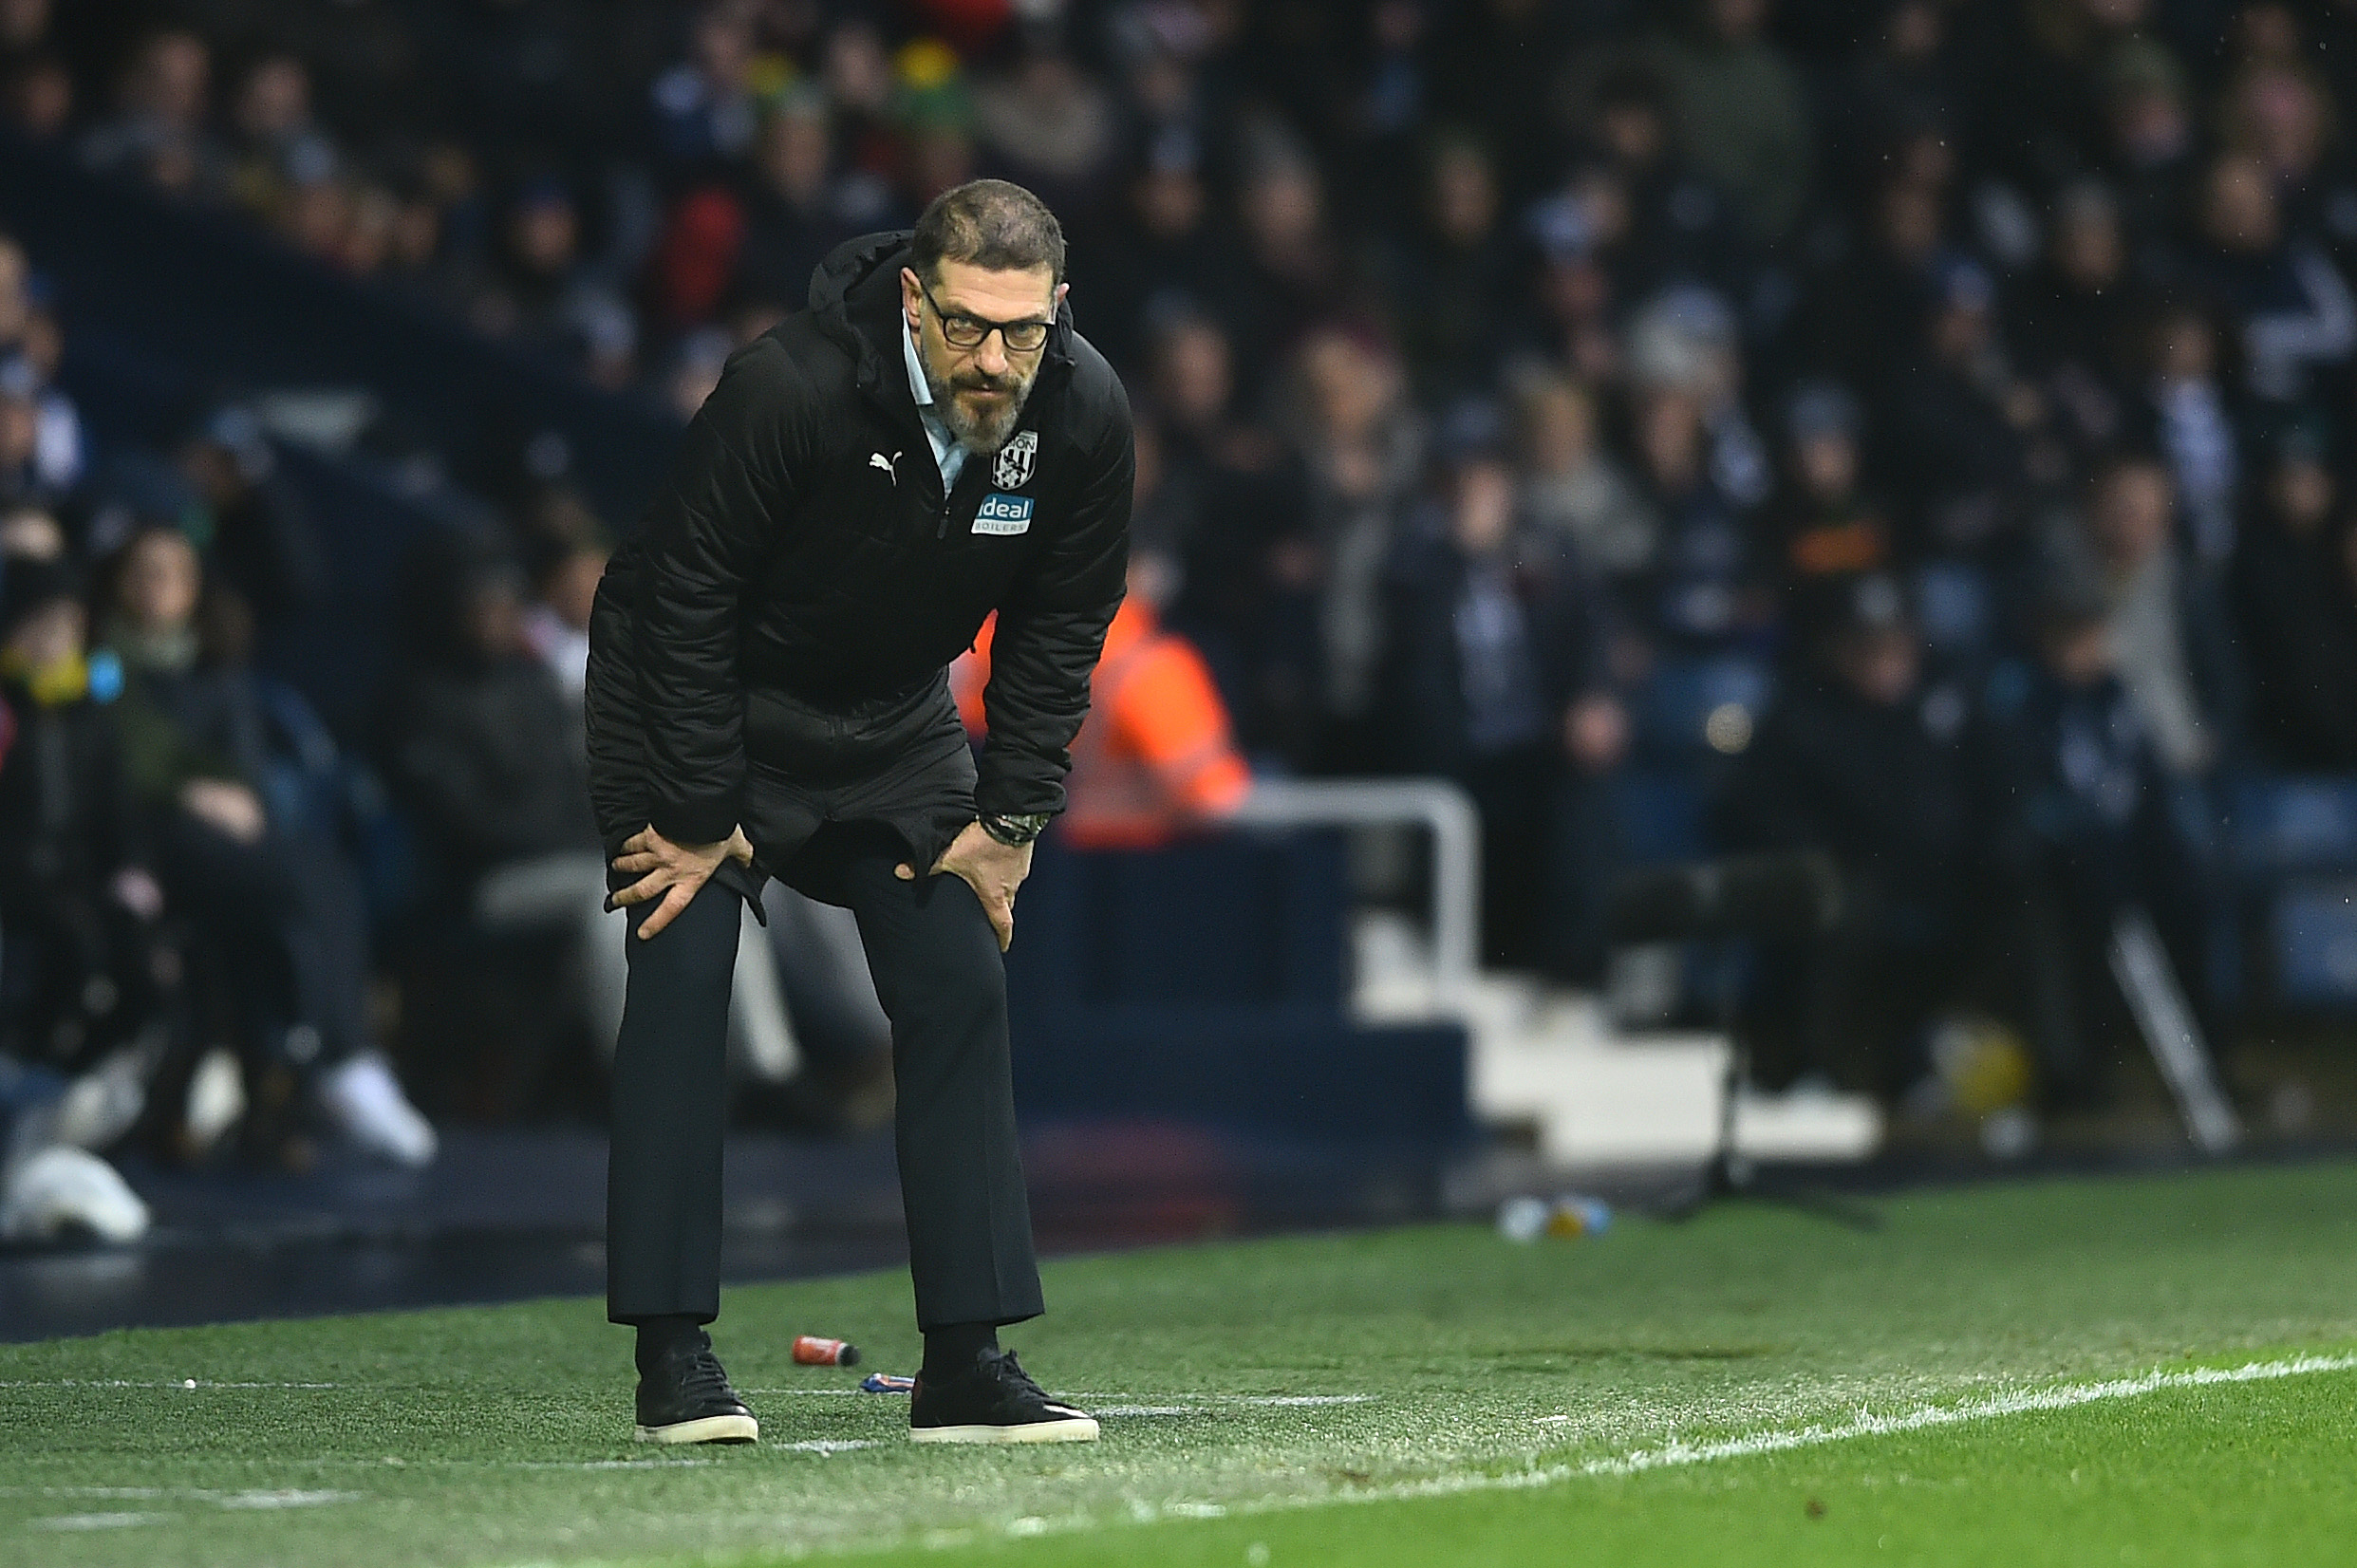 West Brom manager Slaven Bilic looks on during a Championship match last February.